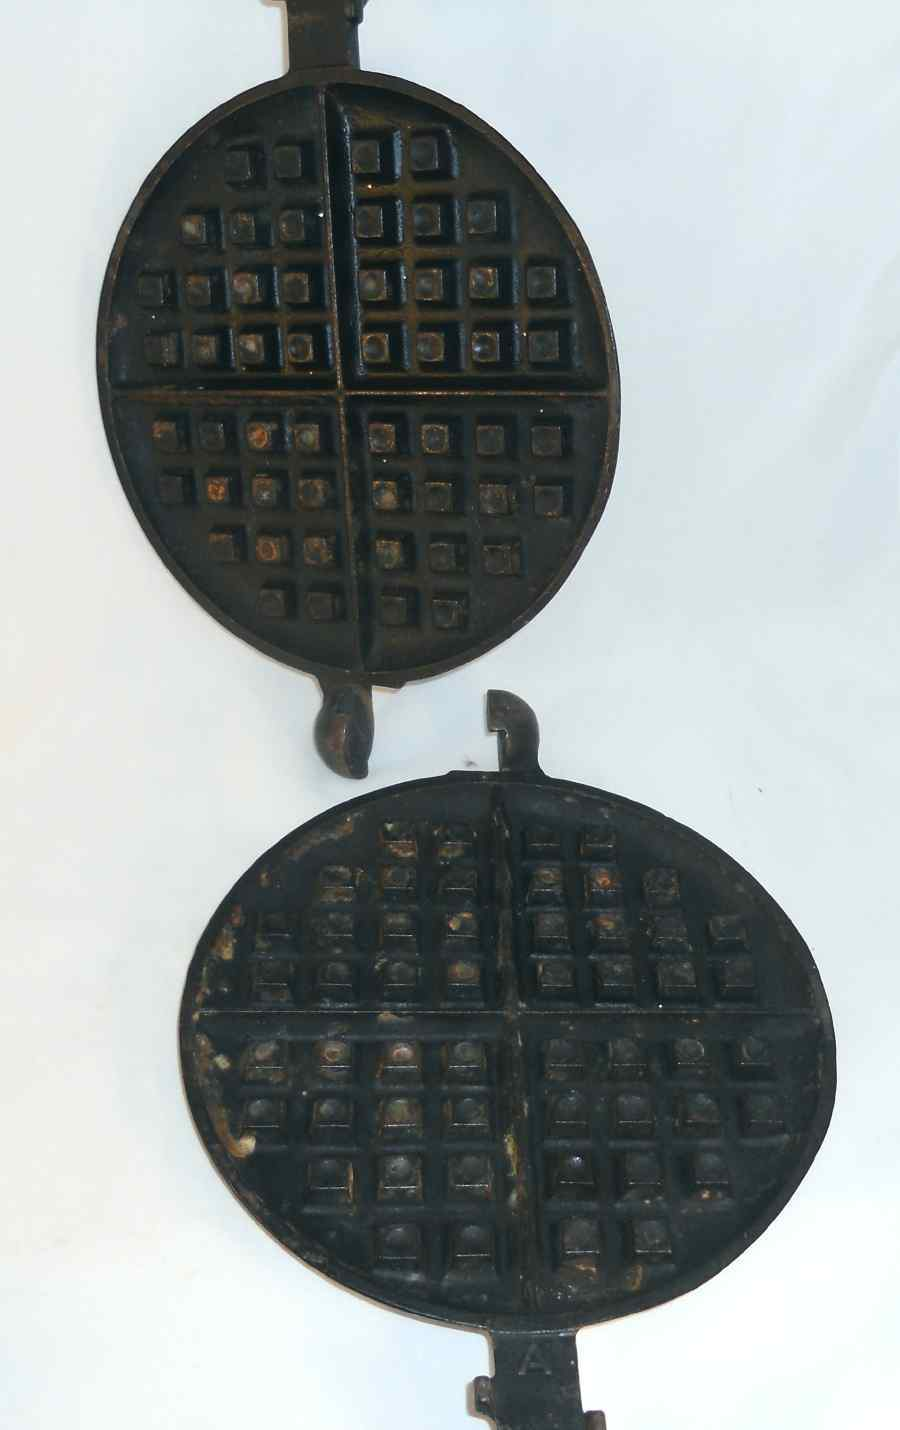 1922 Cast Iron American No. 8 PATT. No. 151 Griswold Ball Joint Waffle Maker